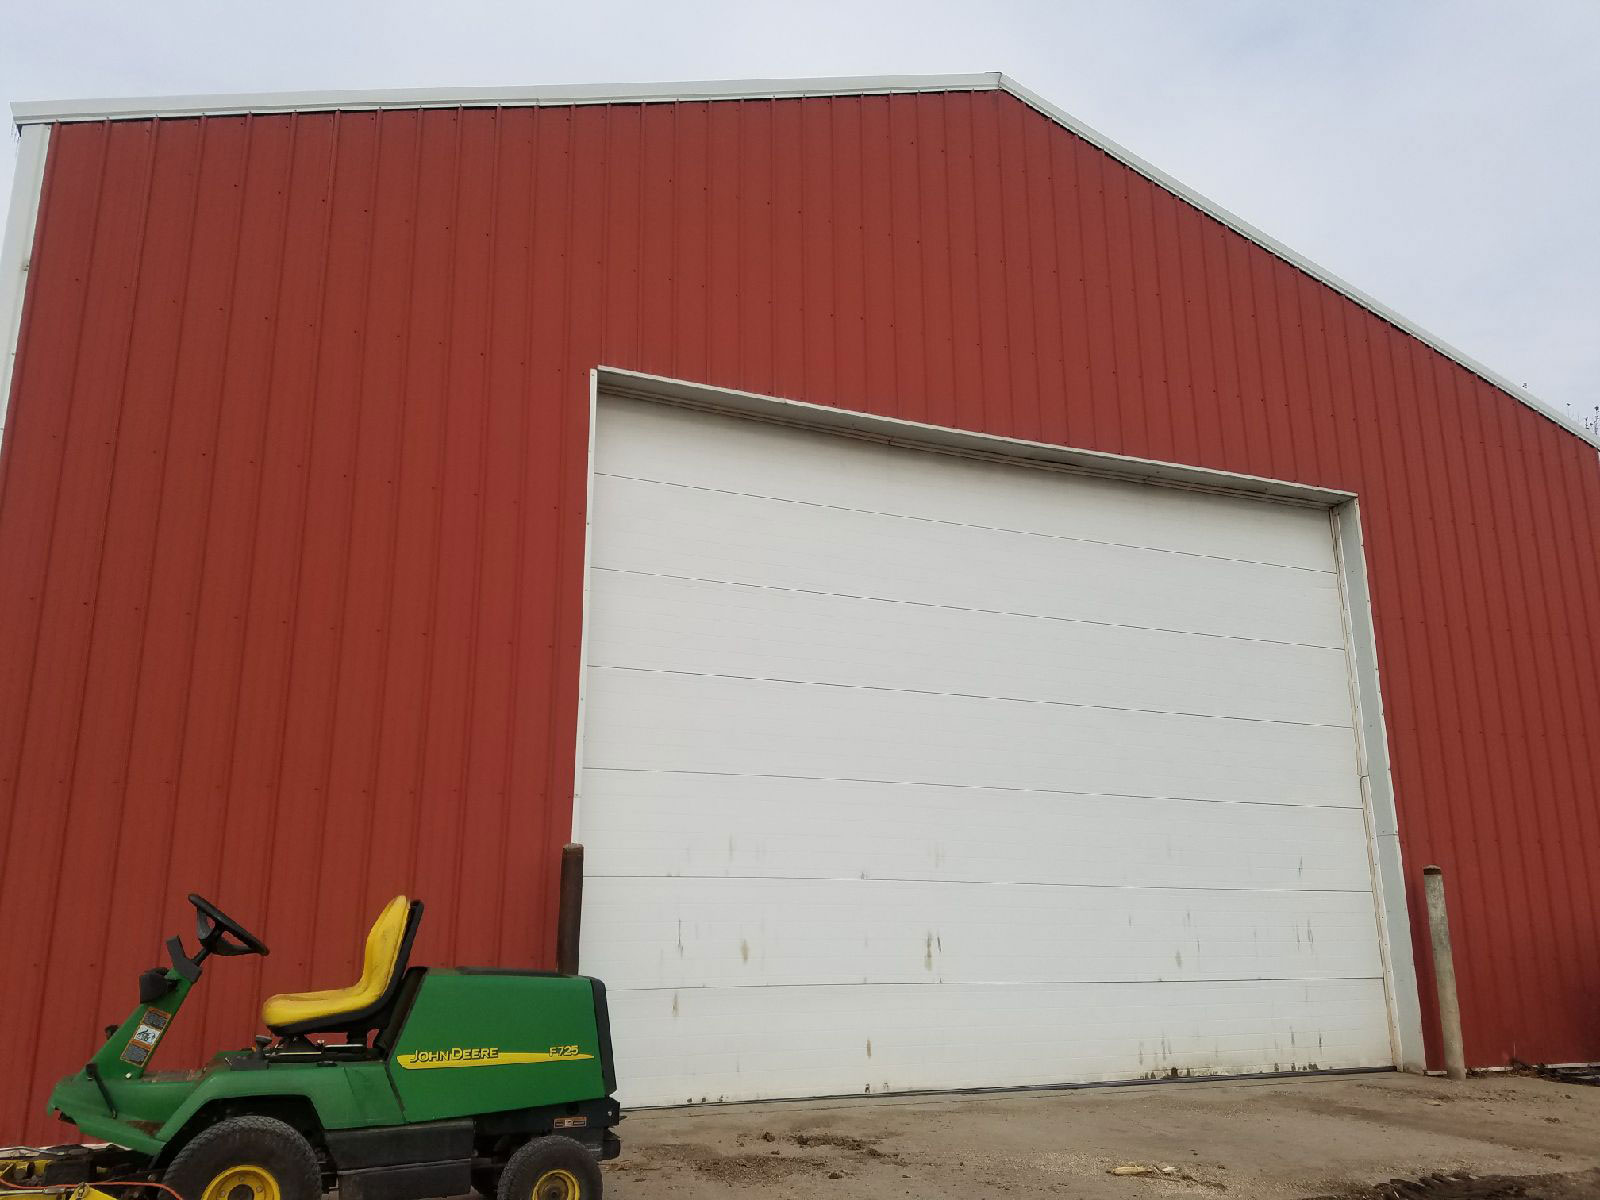 Front of barn with green tractor